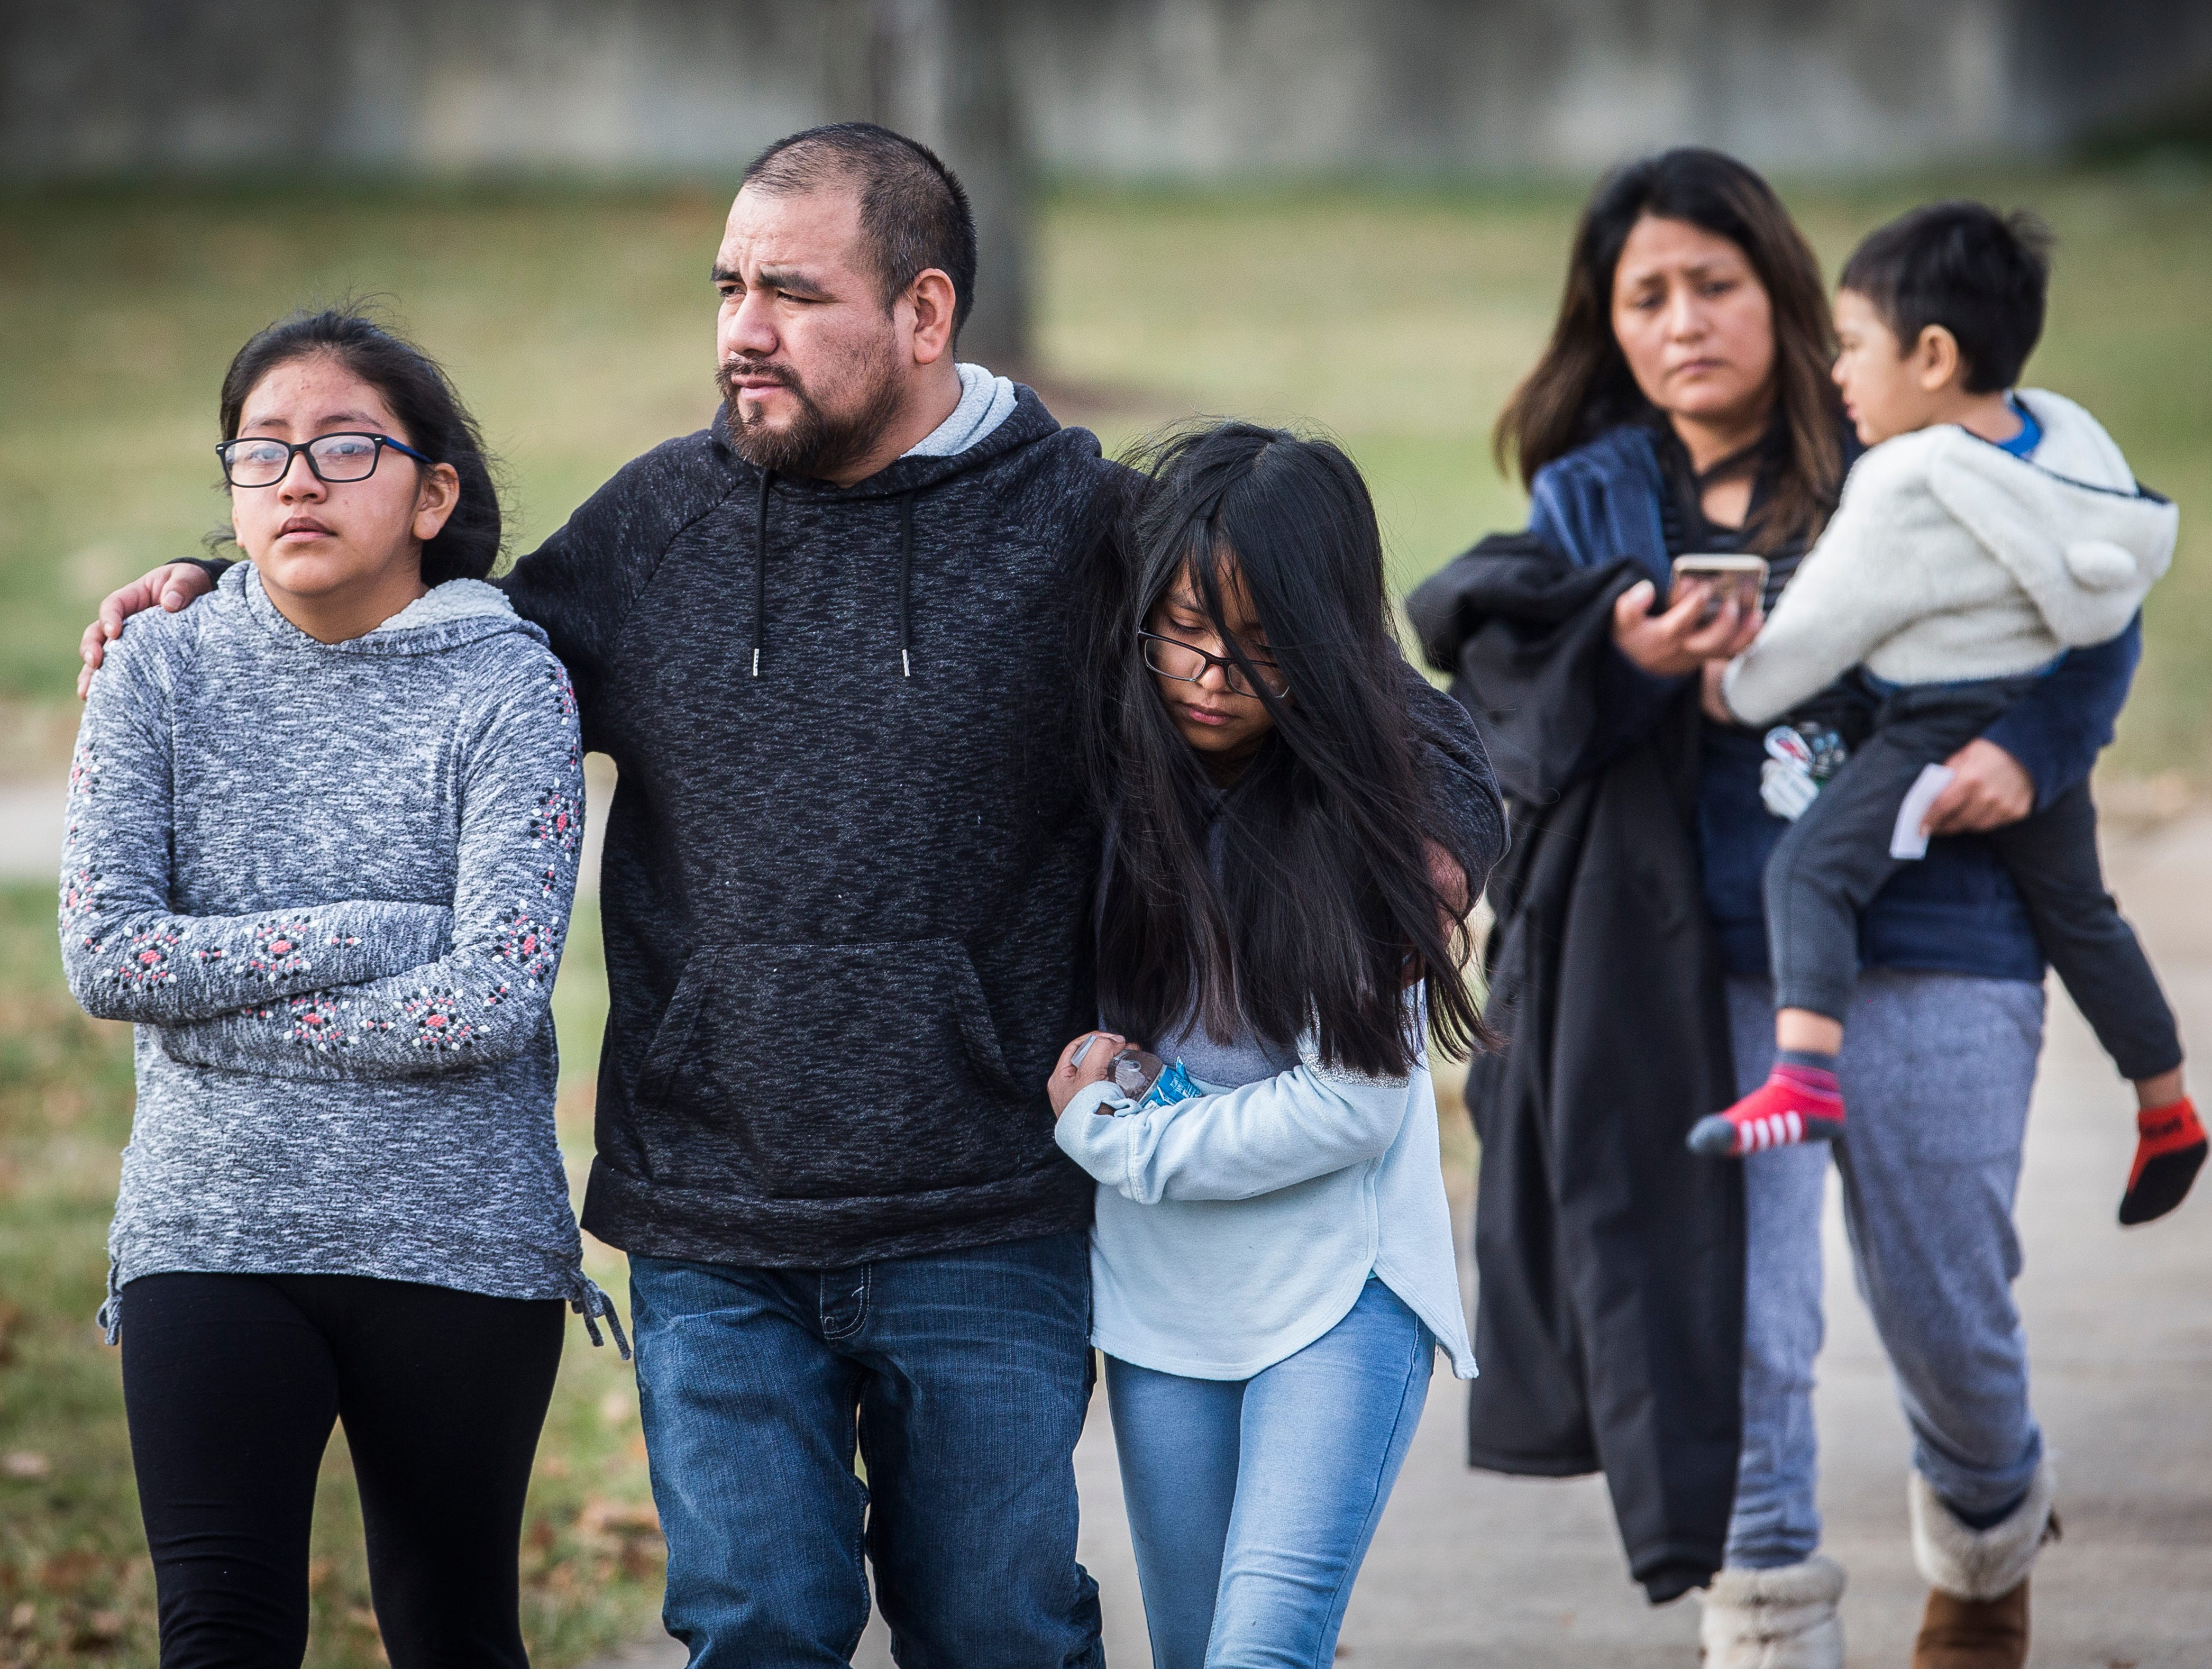 Hundreds of families gather at the Civic Hall Performing Arts Center in Richmond to reunite with their children after an attempted shooting occurred at Dennis Middle School Thursday morning.